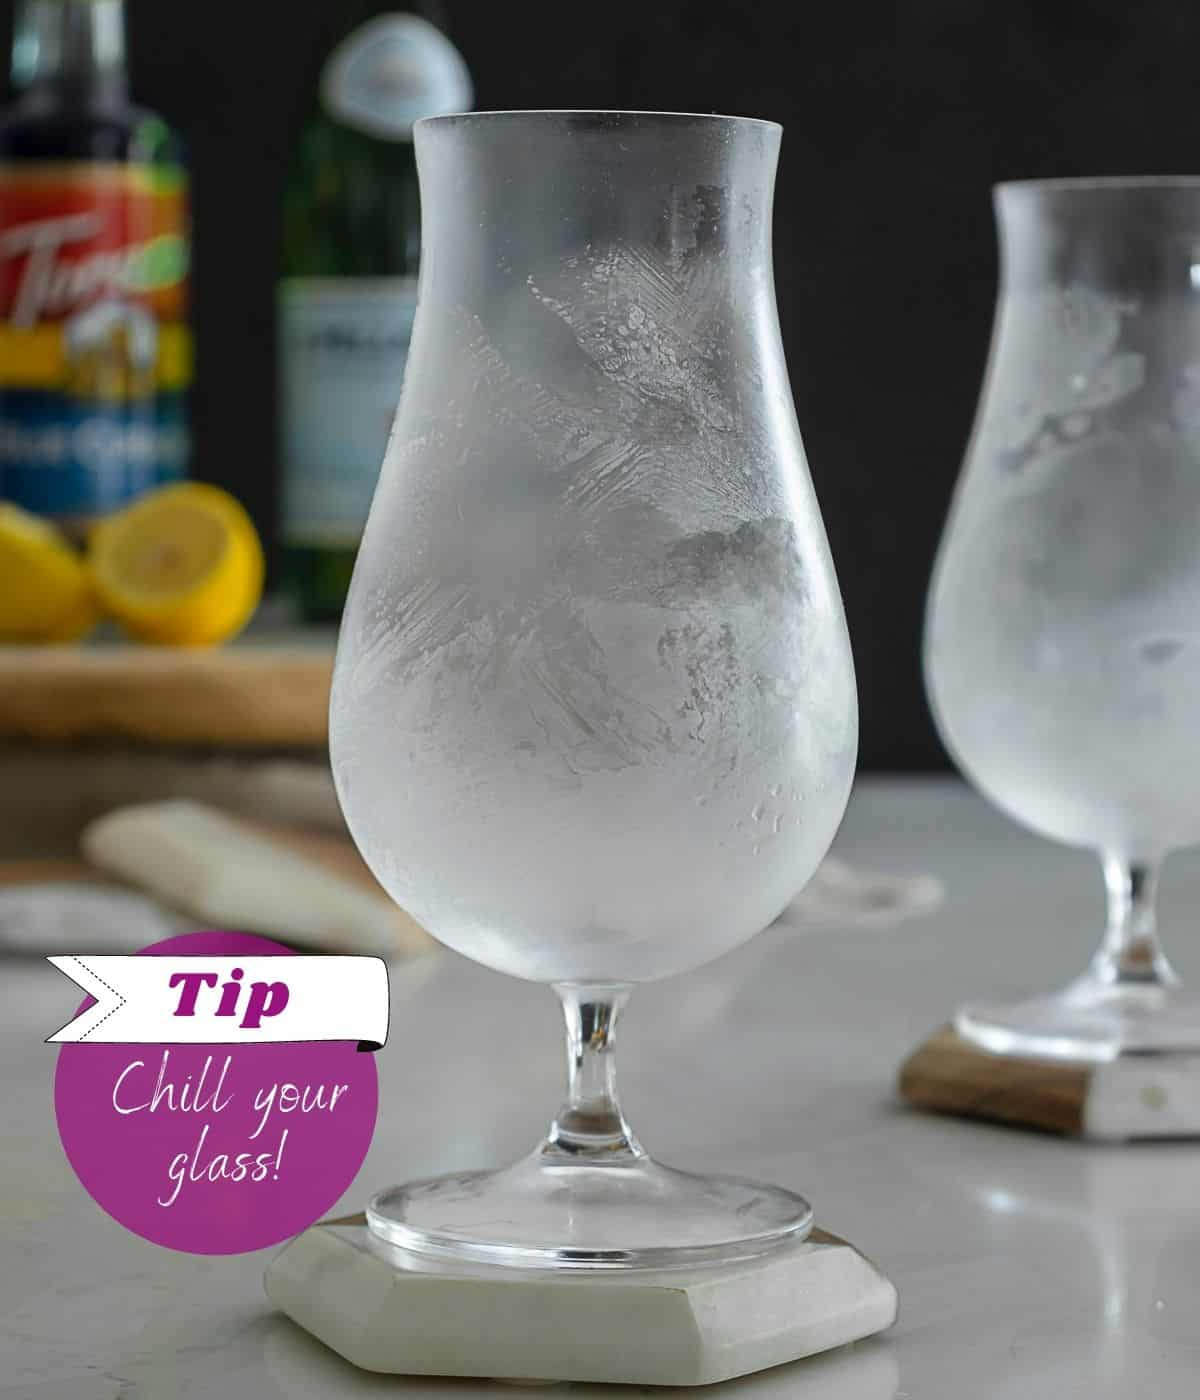 A chilled hurricane glass on table.